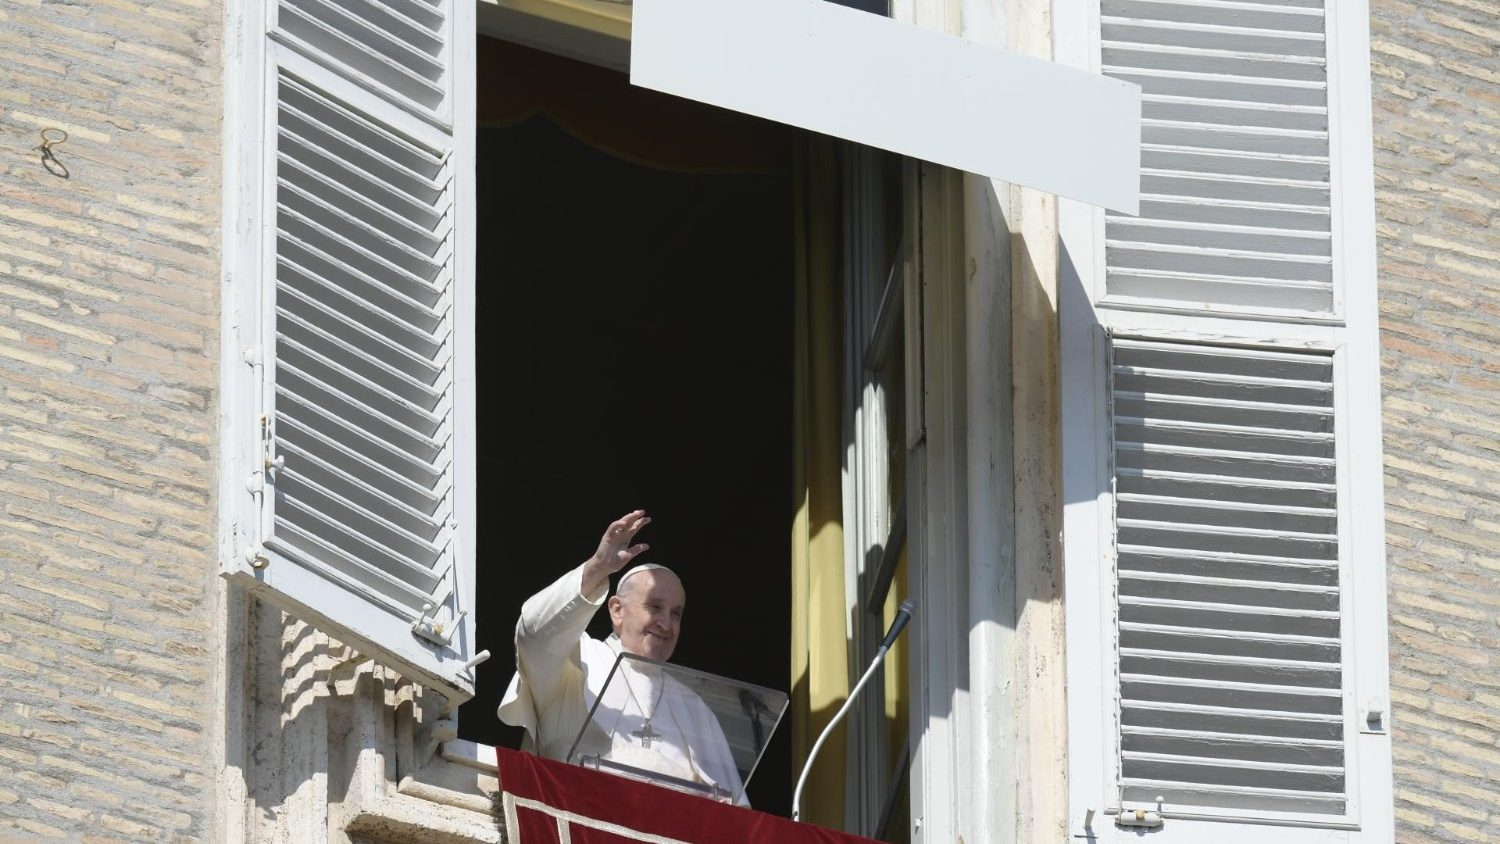 Pope at Angelus: 'go against the current, choose meekness and mercy' - Vatican News